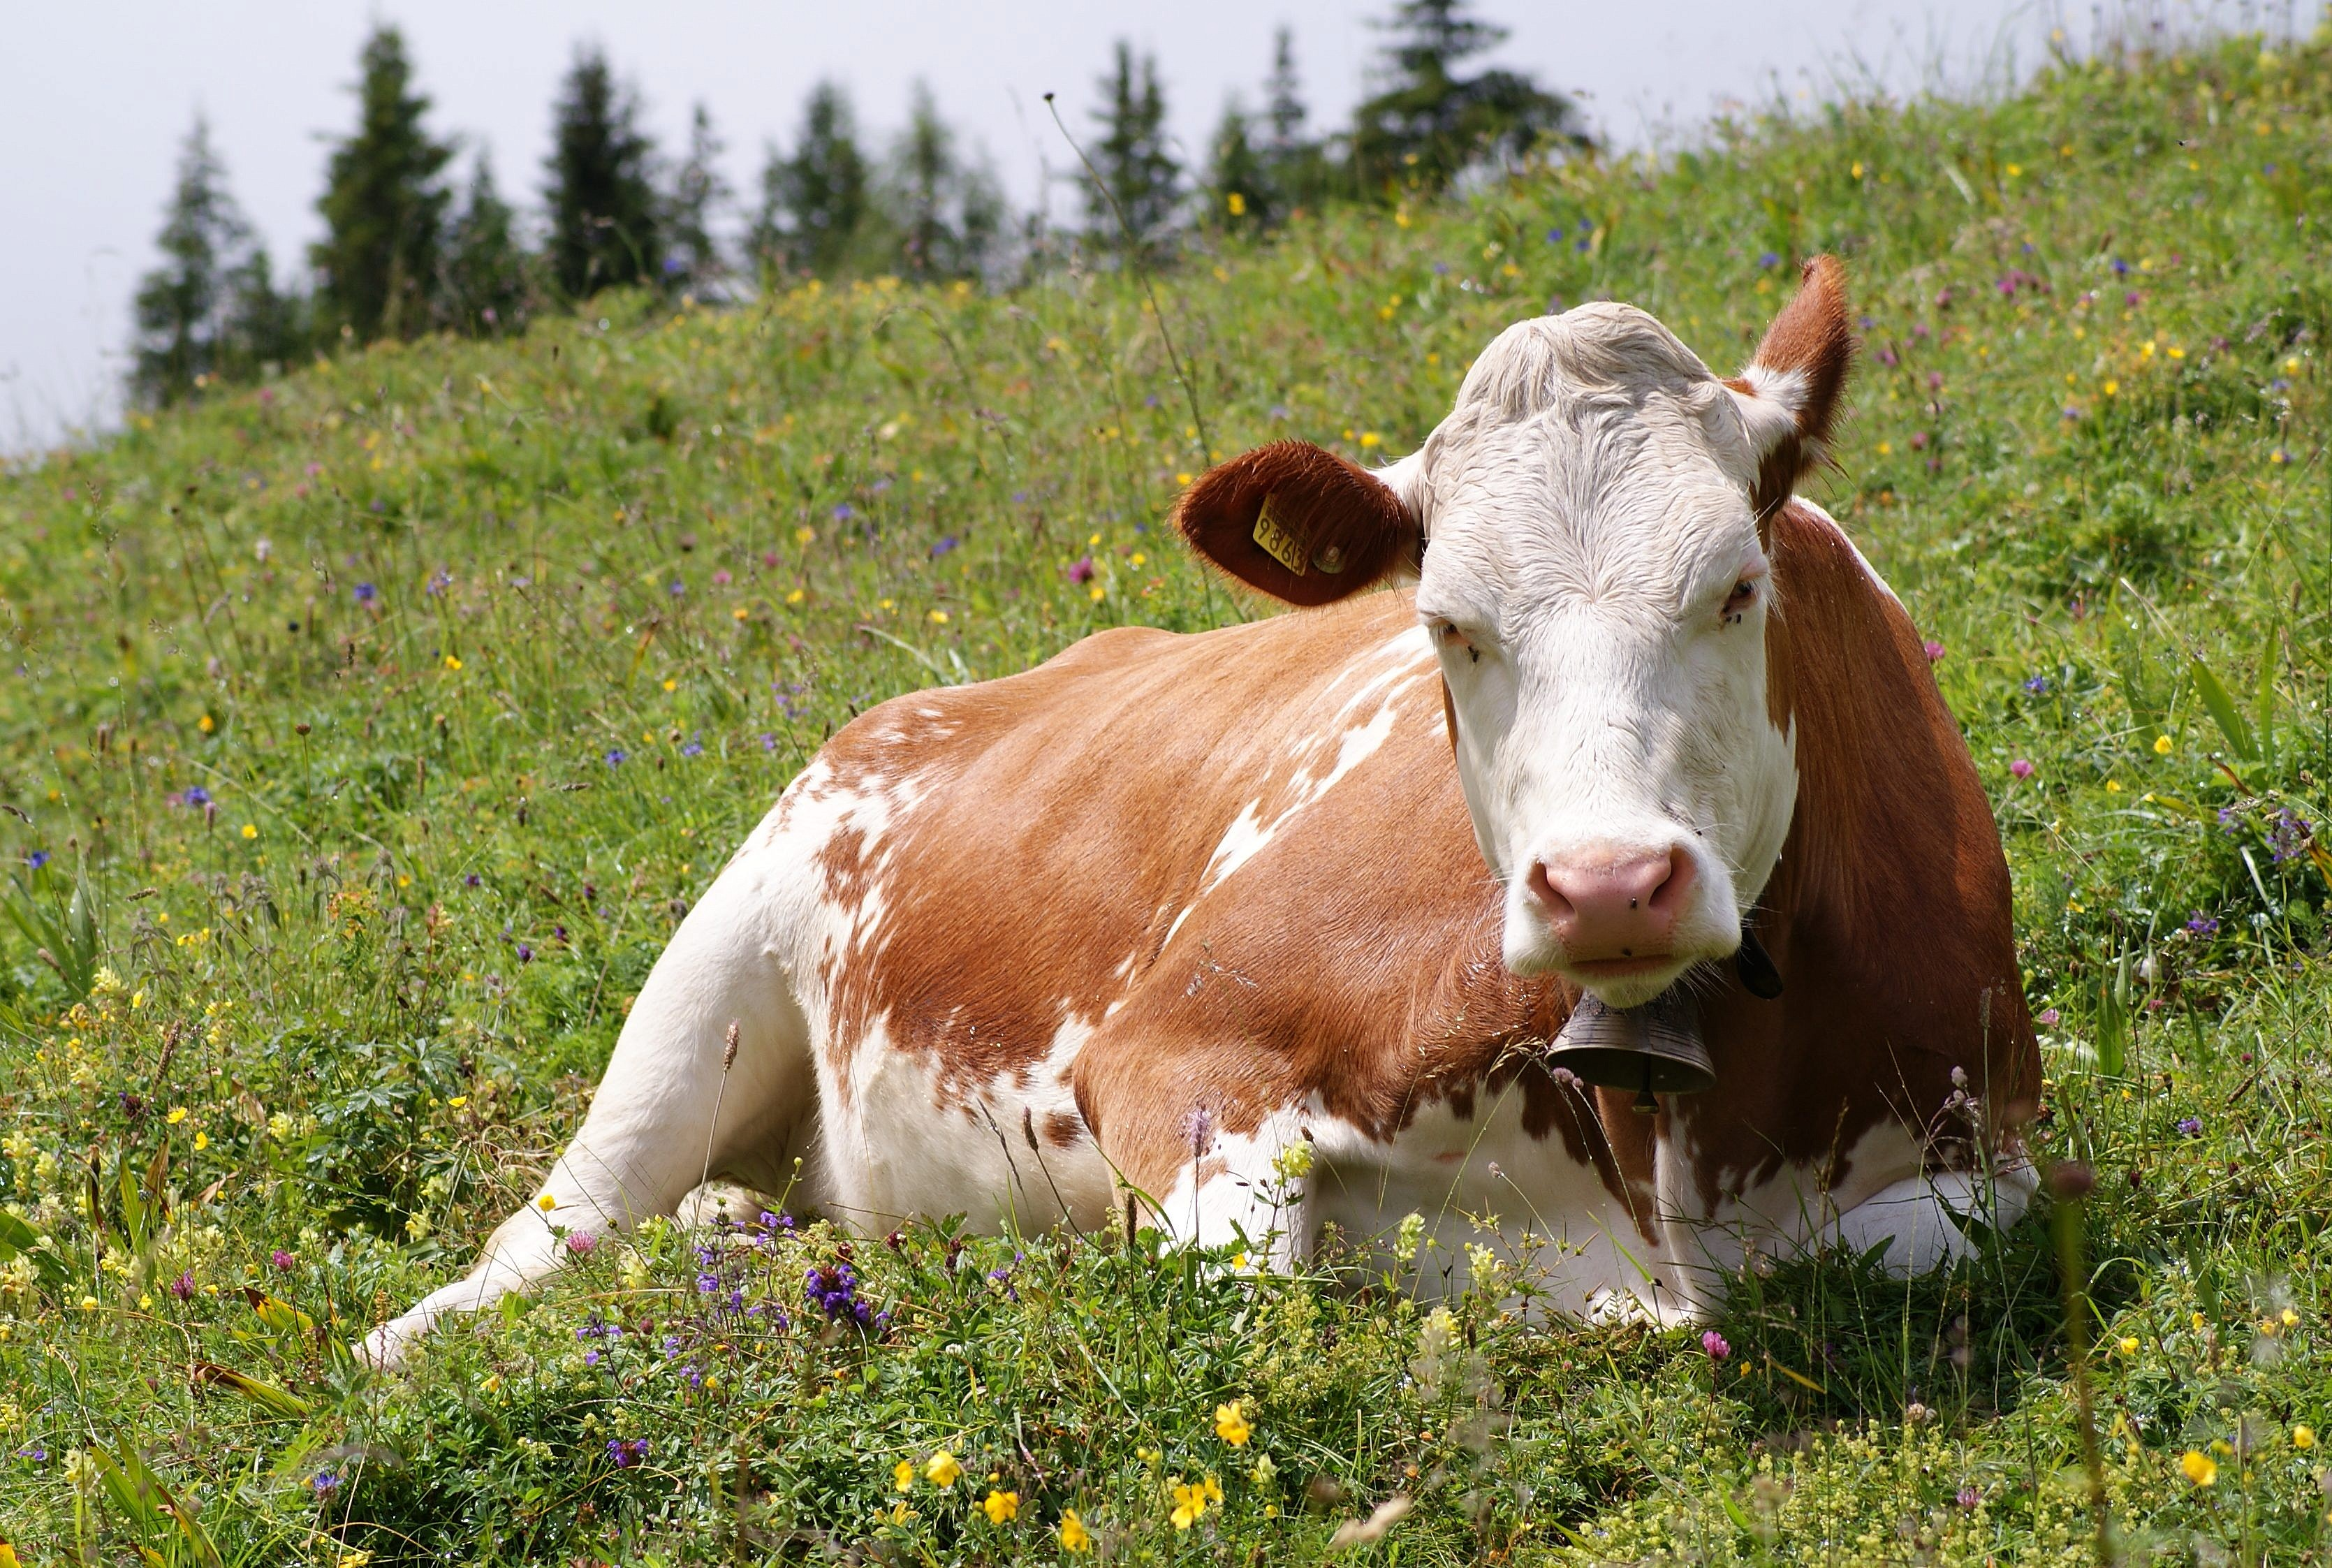 European Union states can mandate stunning animals for slaughter: ECJ